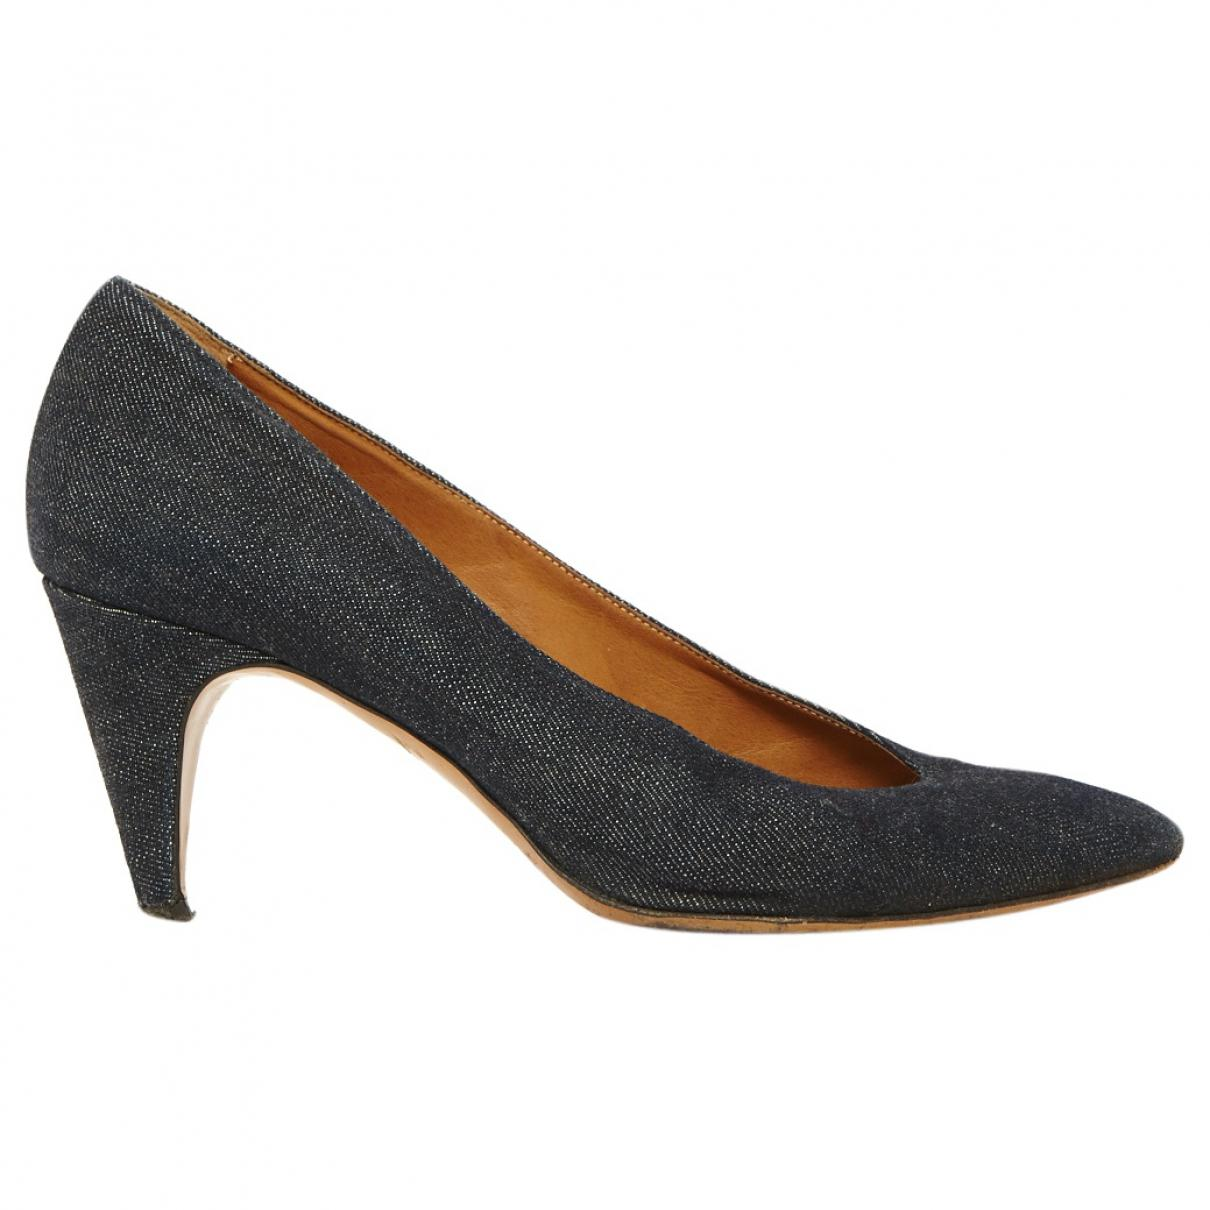 Pre-owned - High heel Isabel Marant Pre Order Cheap Price Cheap Sale Excellent Get Authentic Sale Online 2c8jDZ